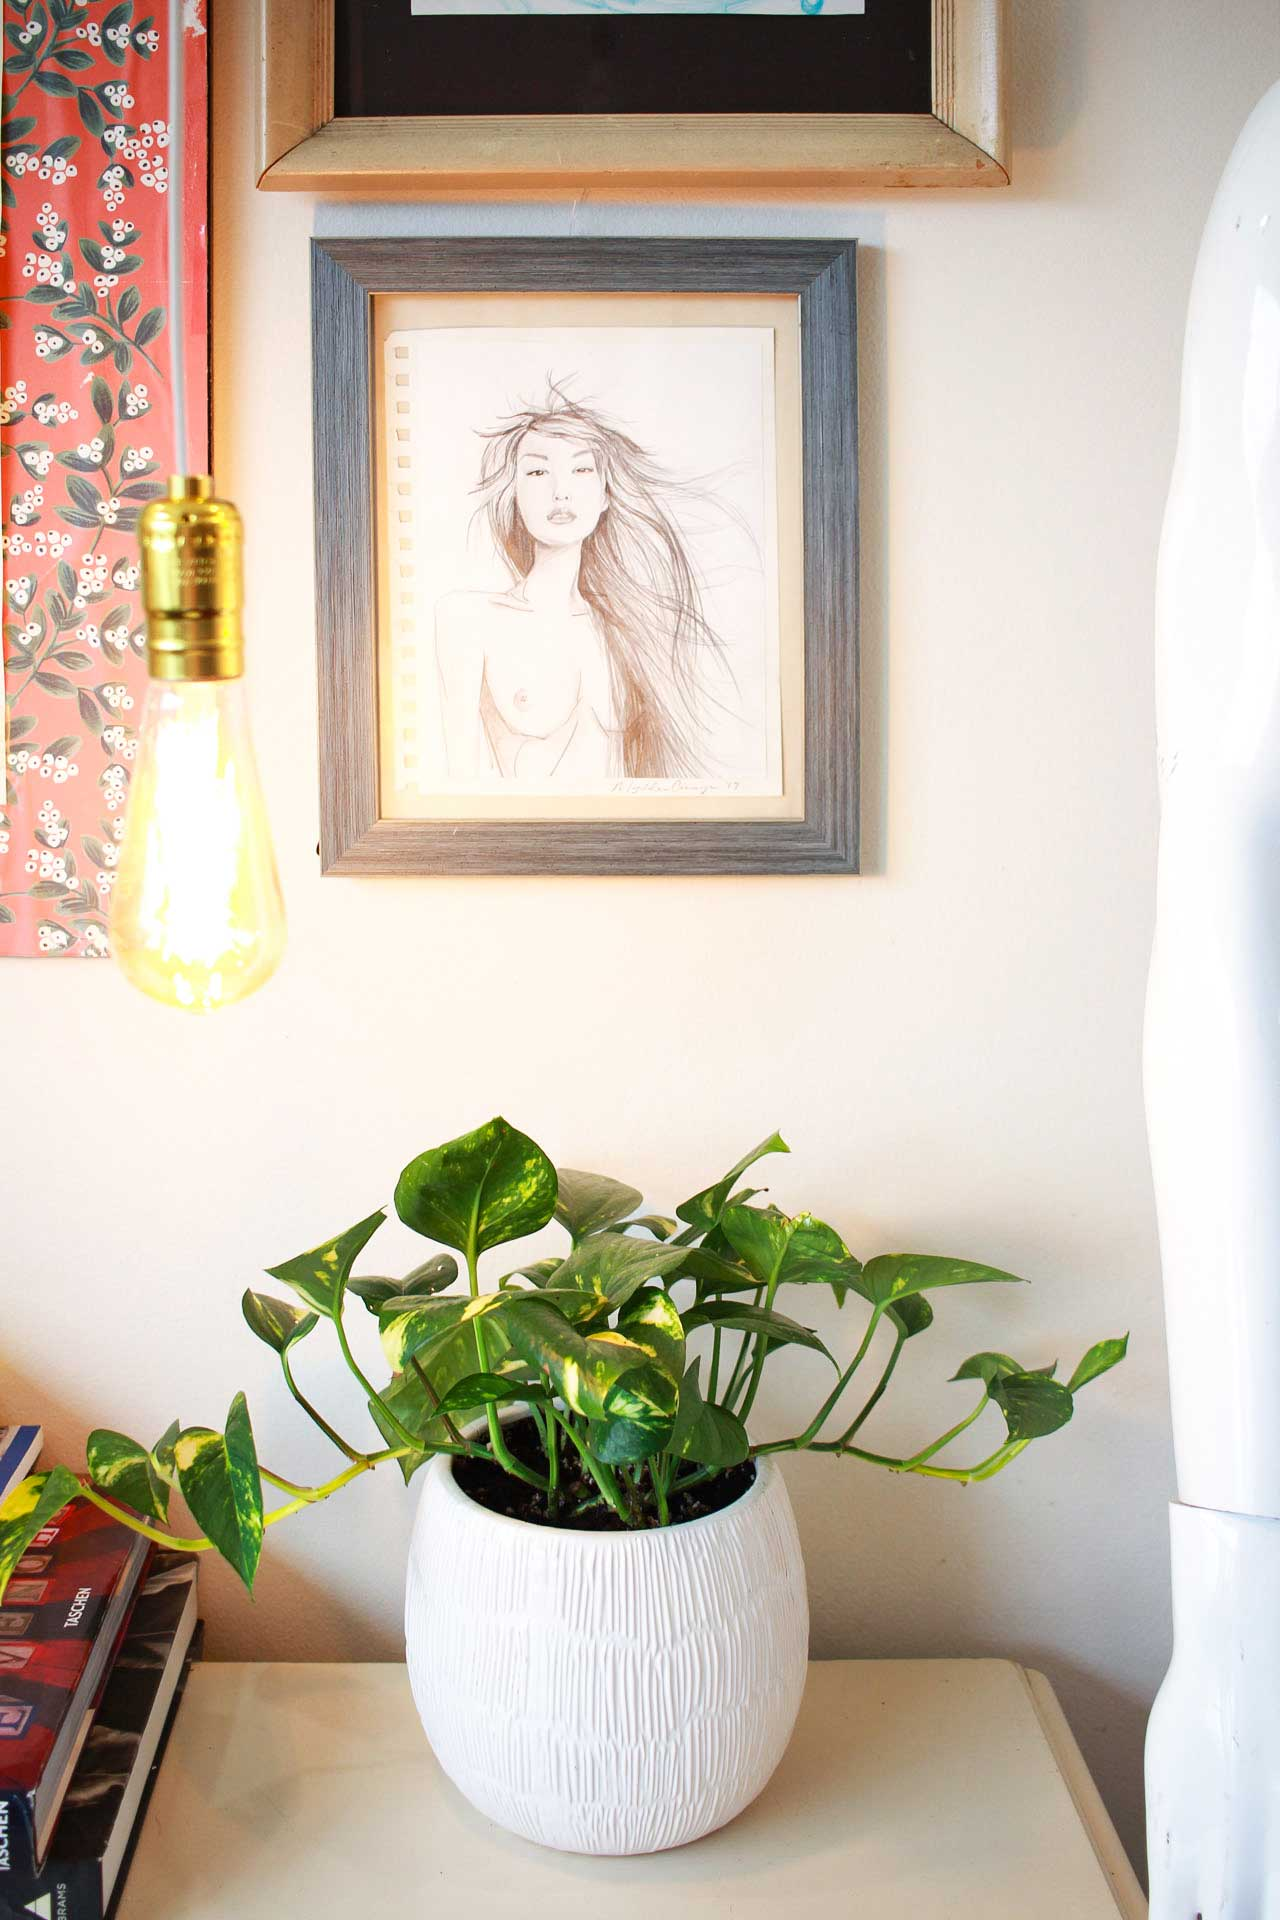 Studio Wall Art of a woman, light and a Pothos plant